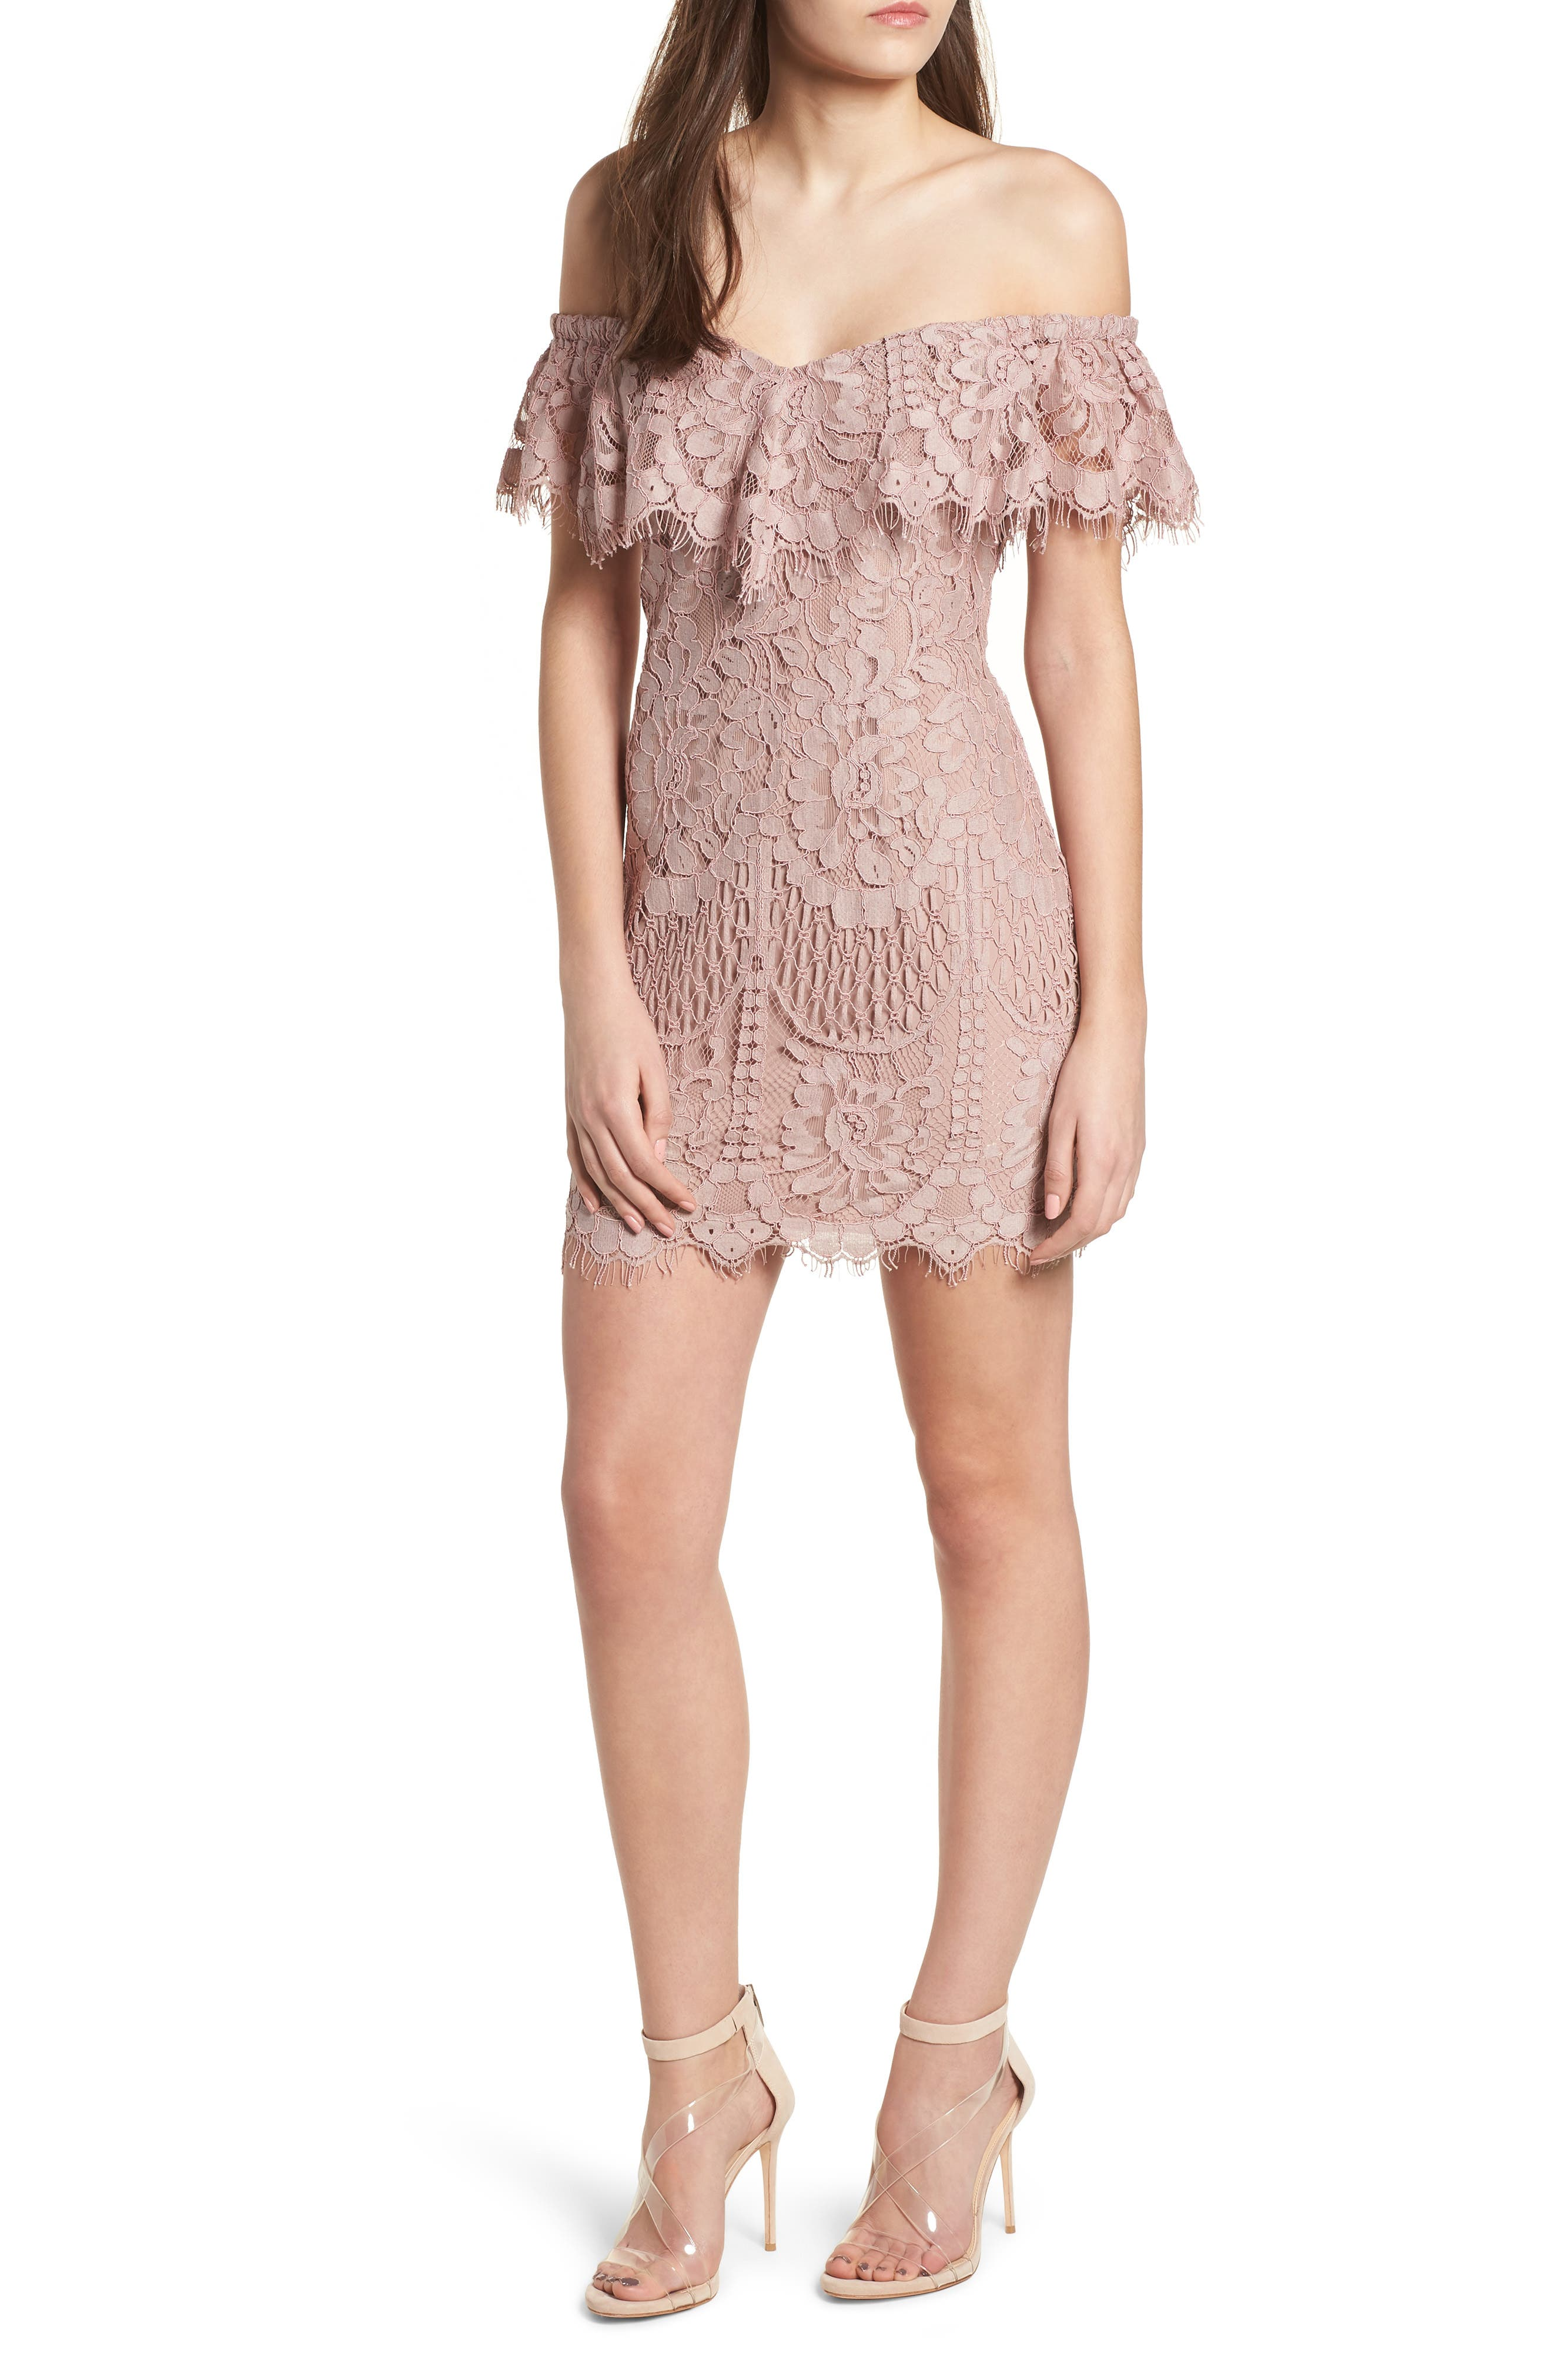 WAYF Venice Off the Shoulder Lace Minidress